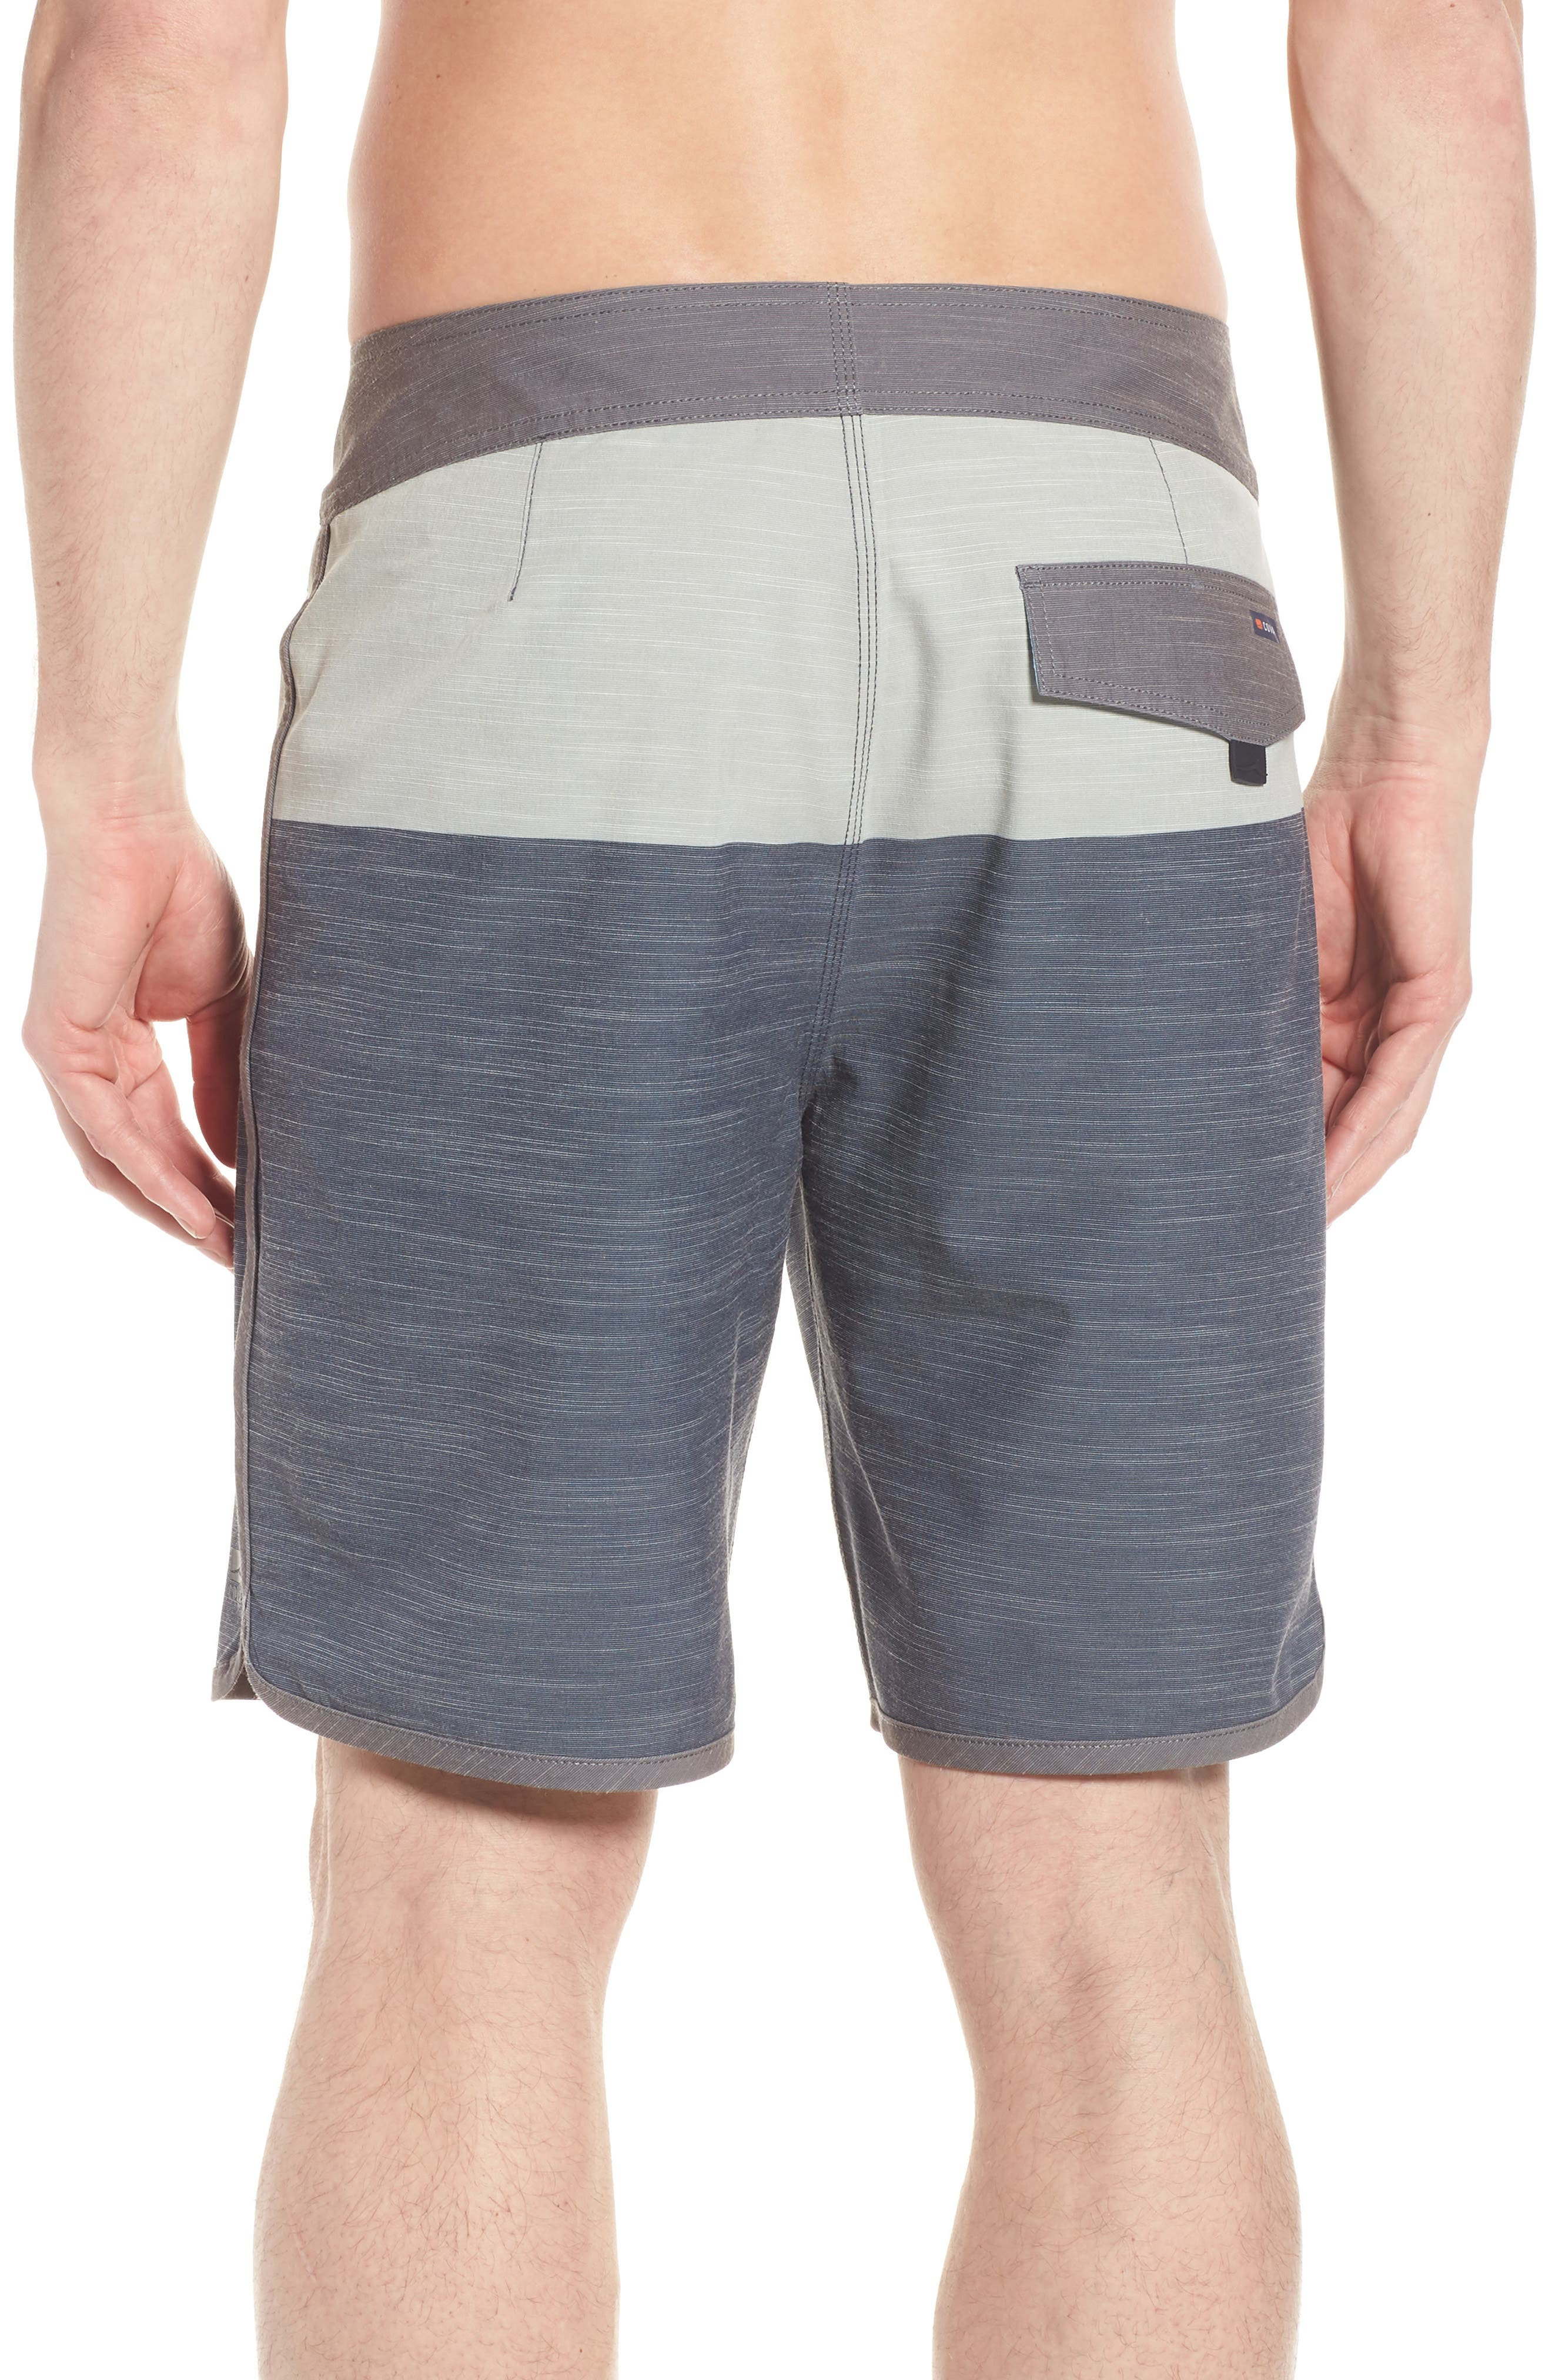 Beachcomber Board Shorts,                             Alternate thumbnail 2, color,                             Charcoal